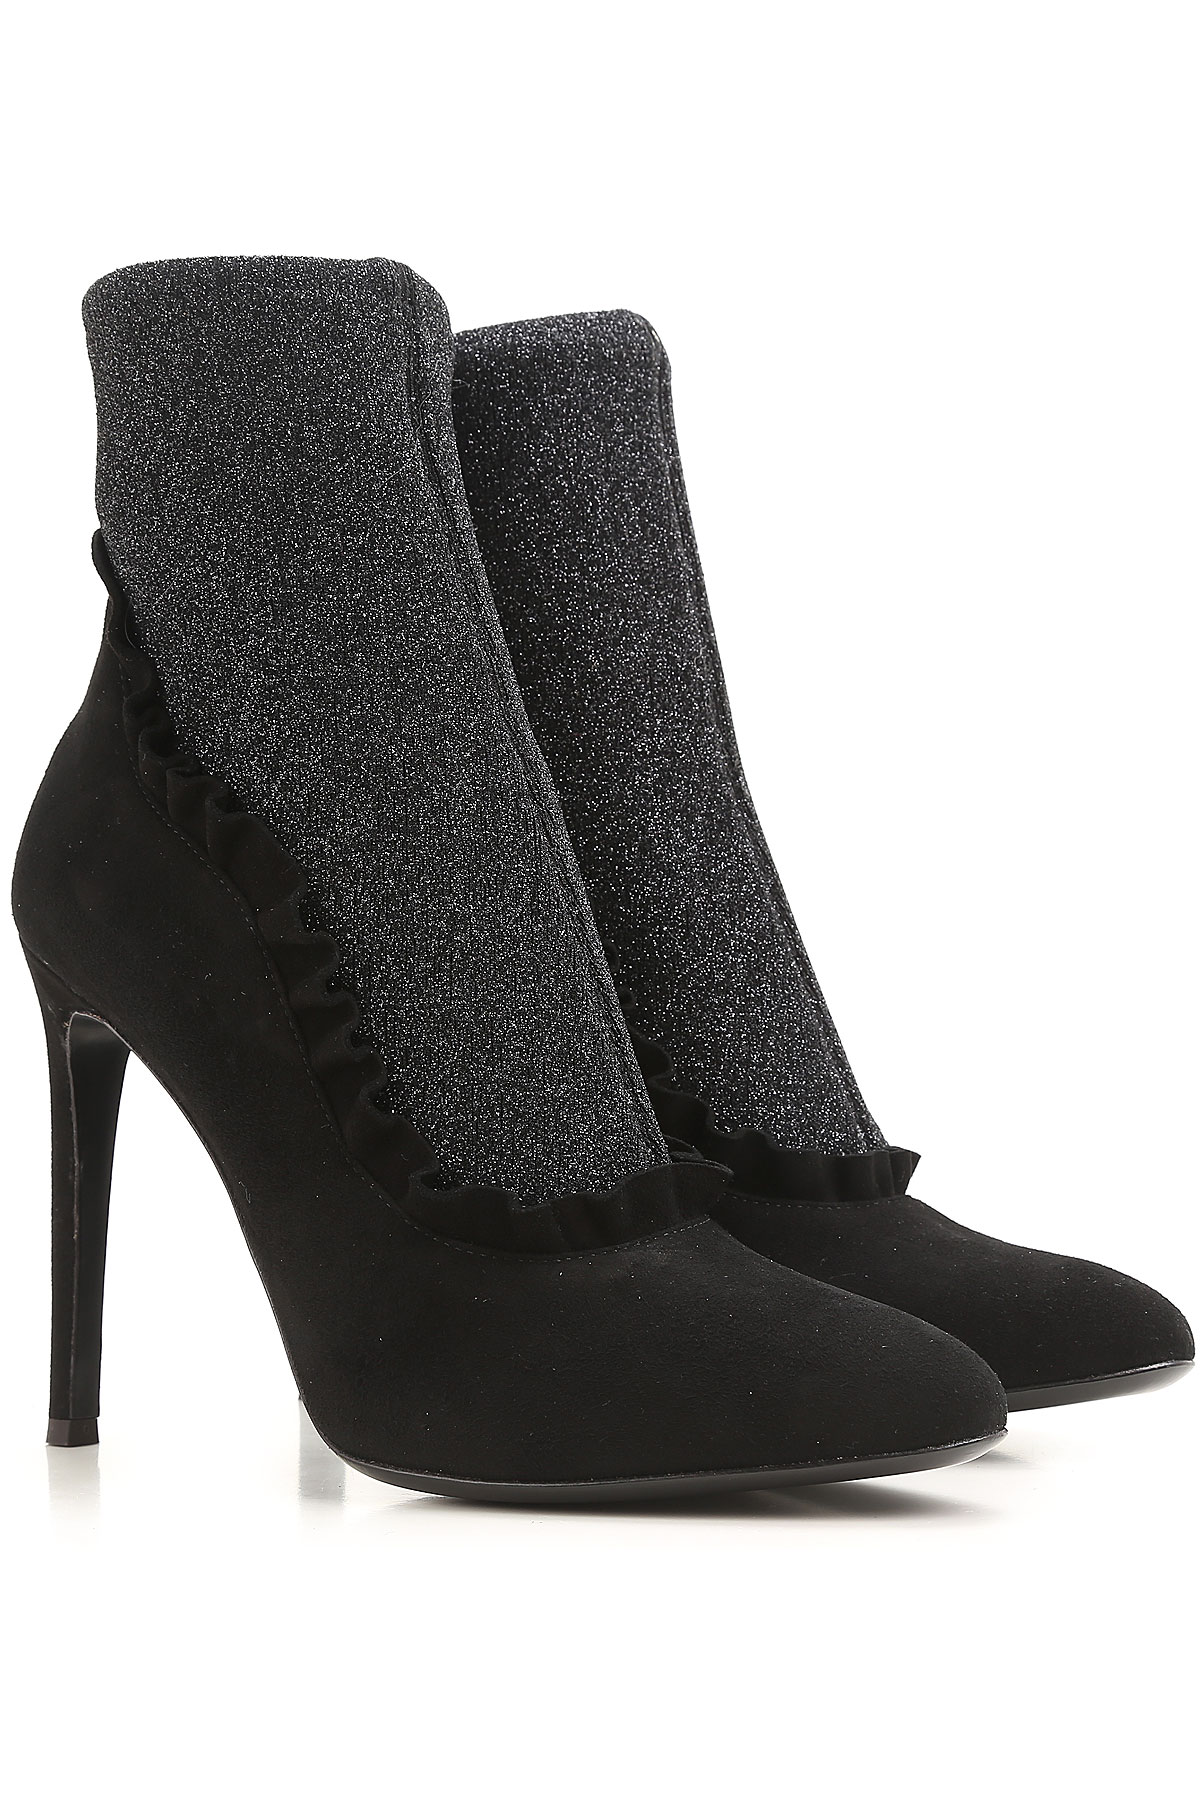 Giuseppe Zanotti Design Boots for Women, Booties On Sale in Outlet, Black, suede, 2019, 10